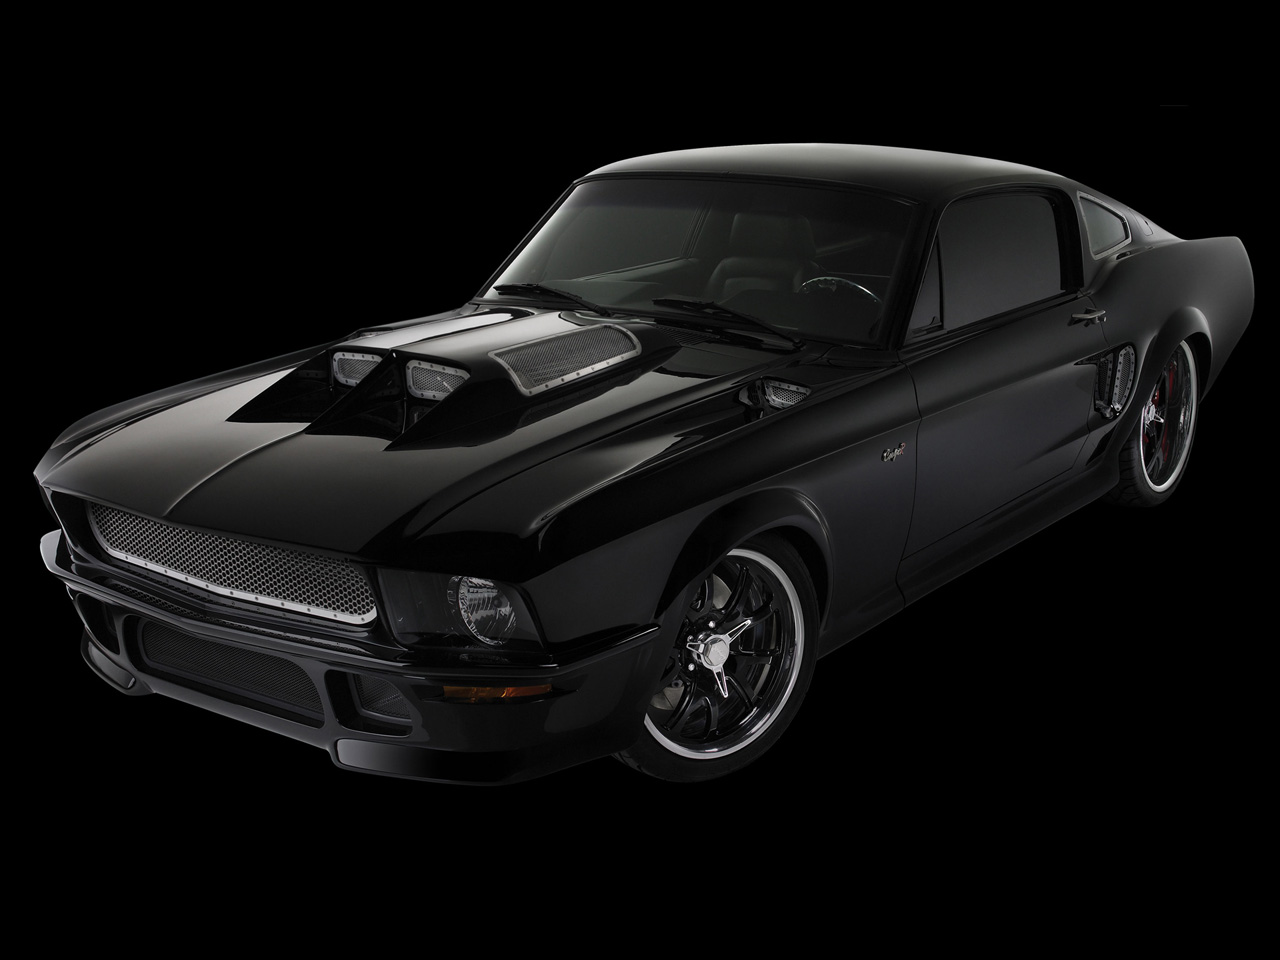 AmcarGuide.com - American Muscle